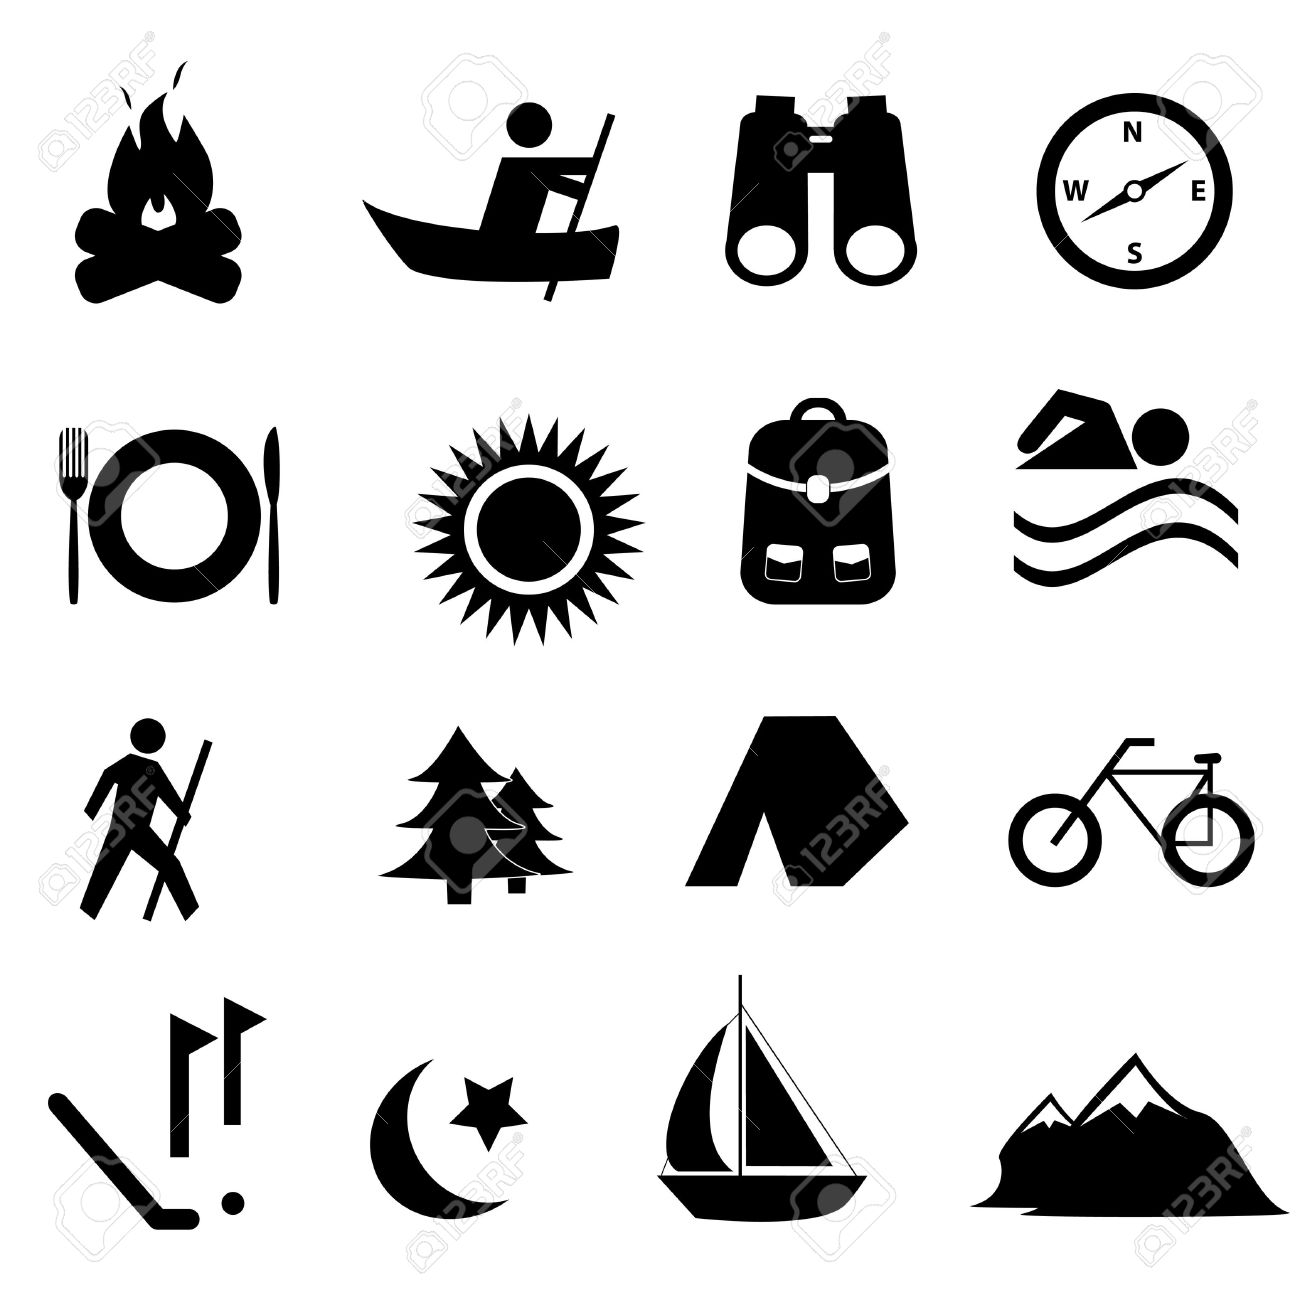 Leisure, sports and recreation icon set Stock Vector - 10484873